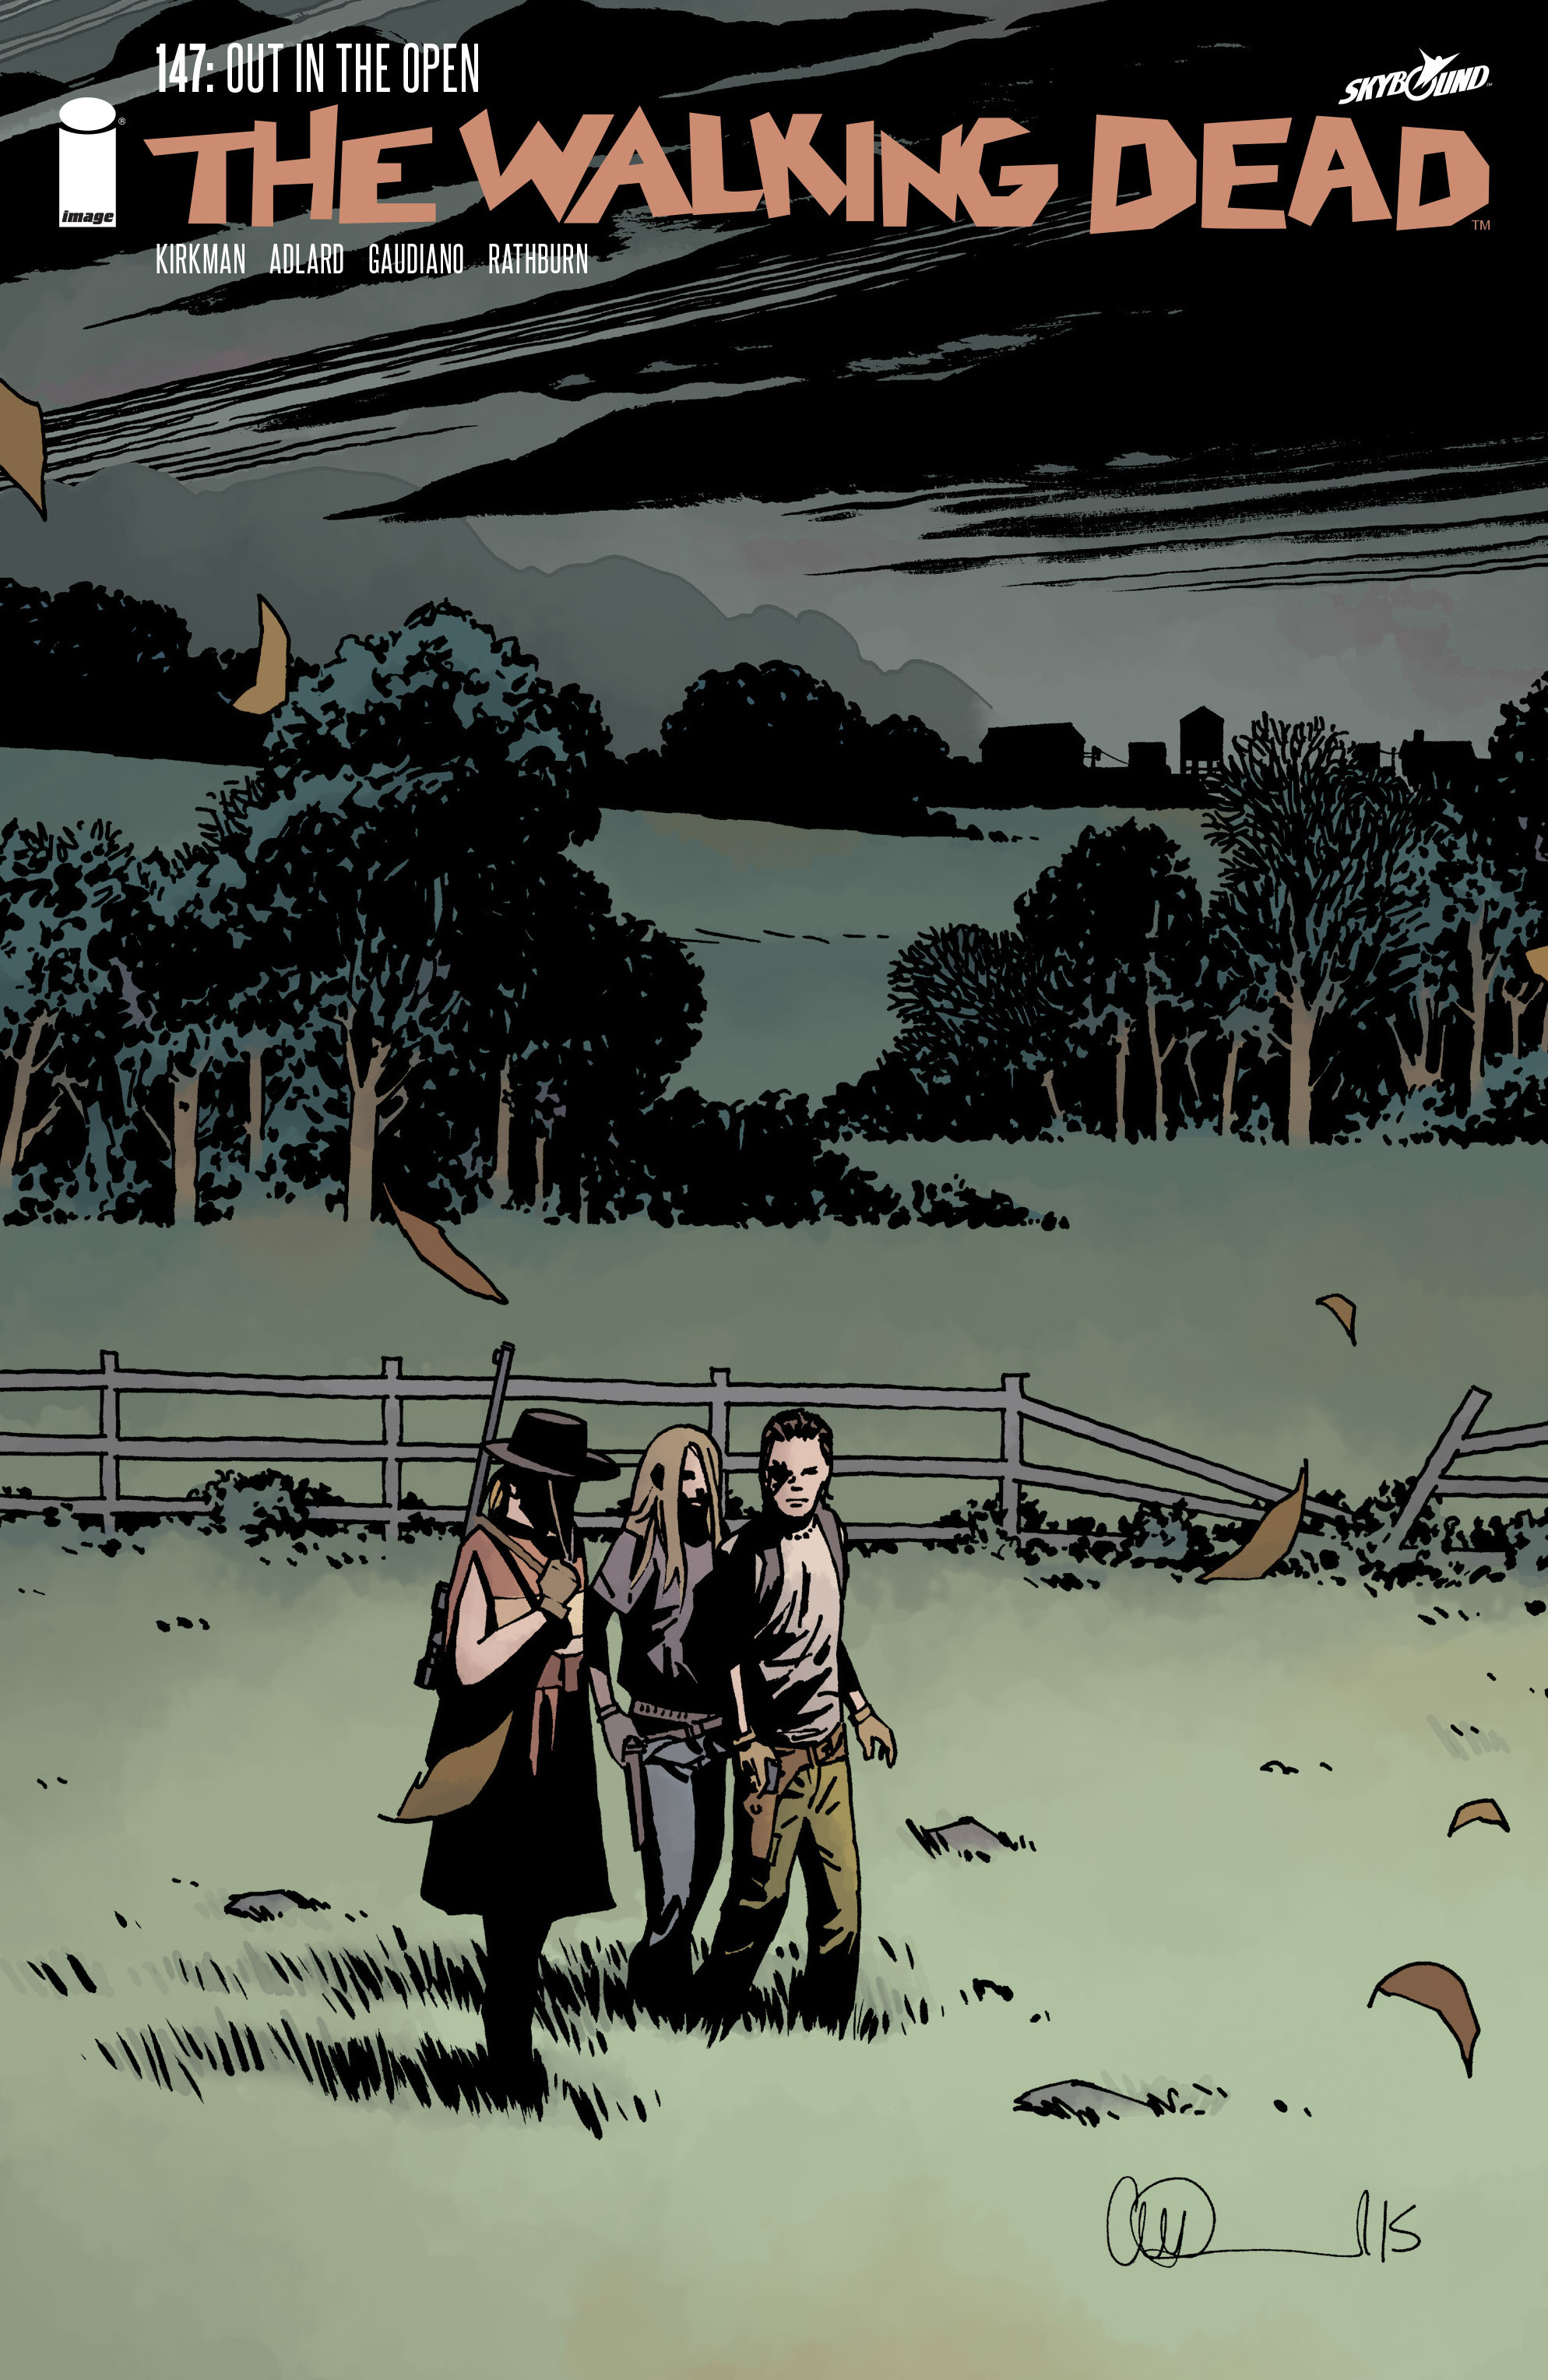 The Walking Dead #14...